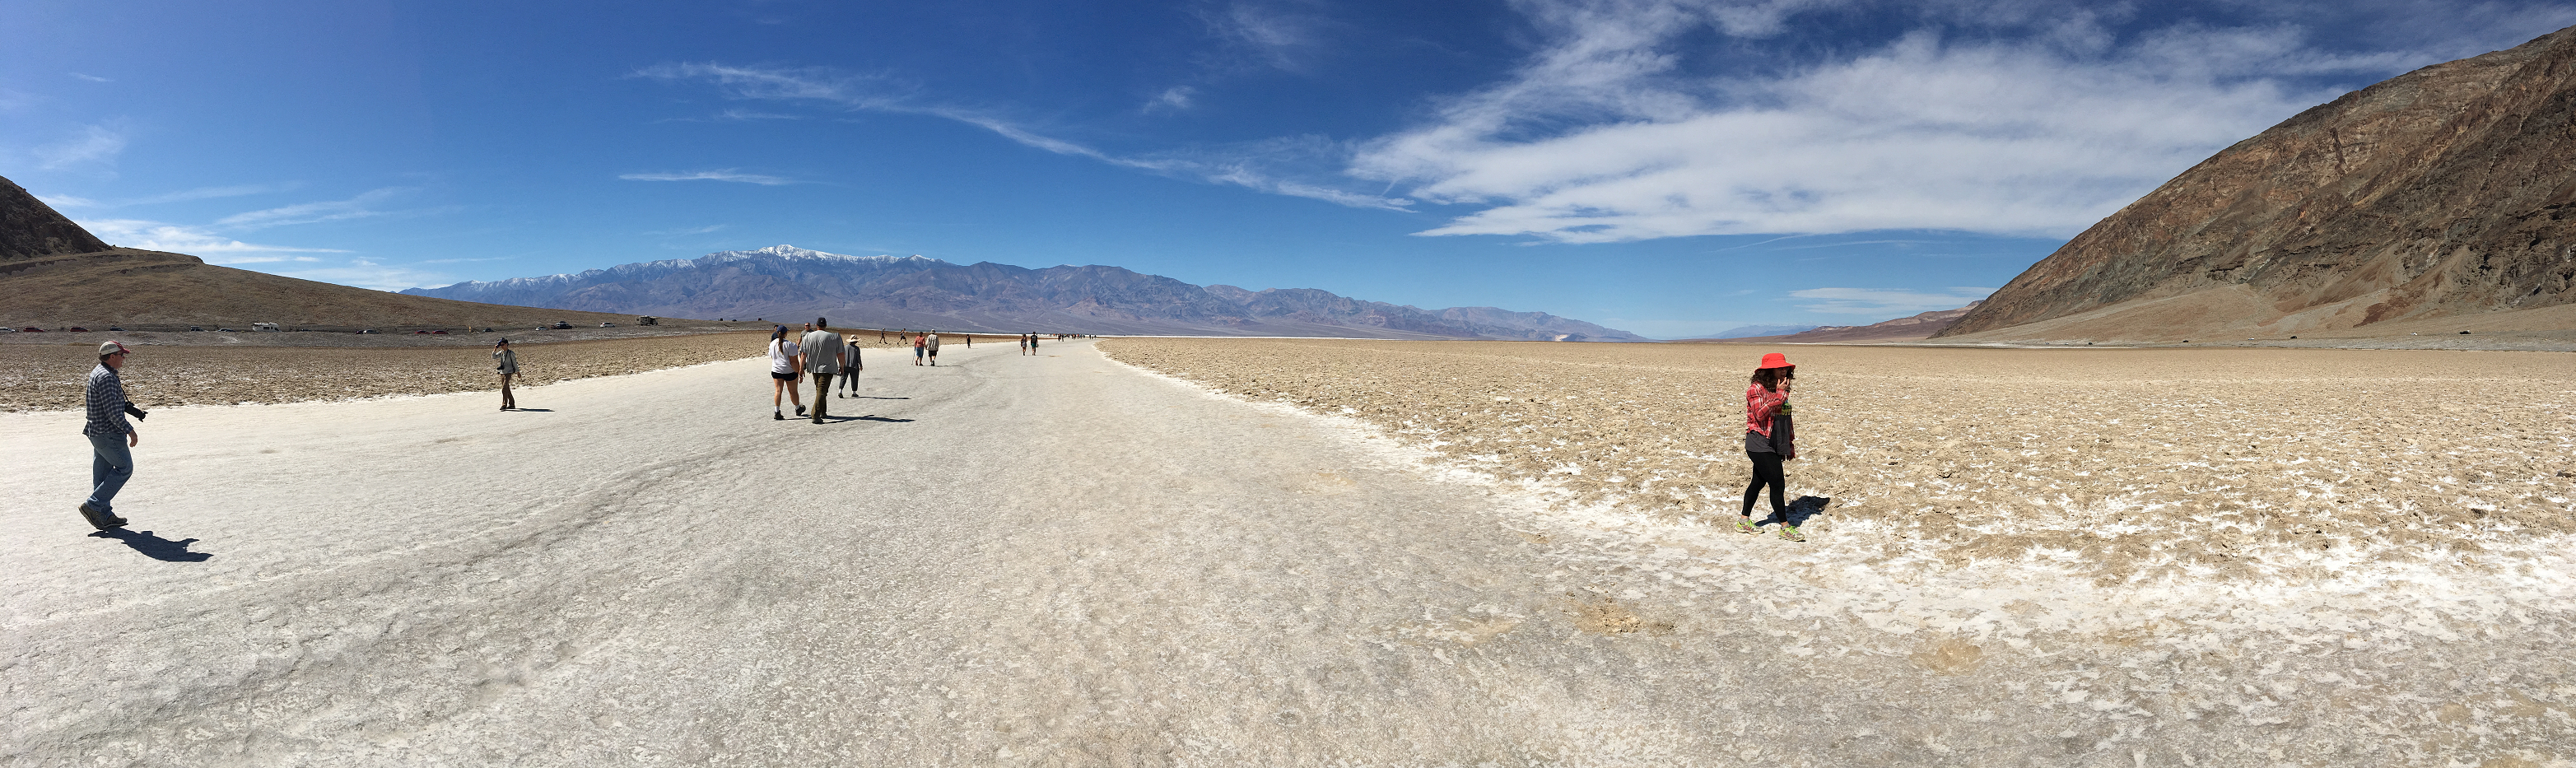 Badwater path